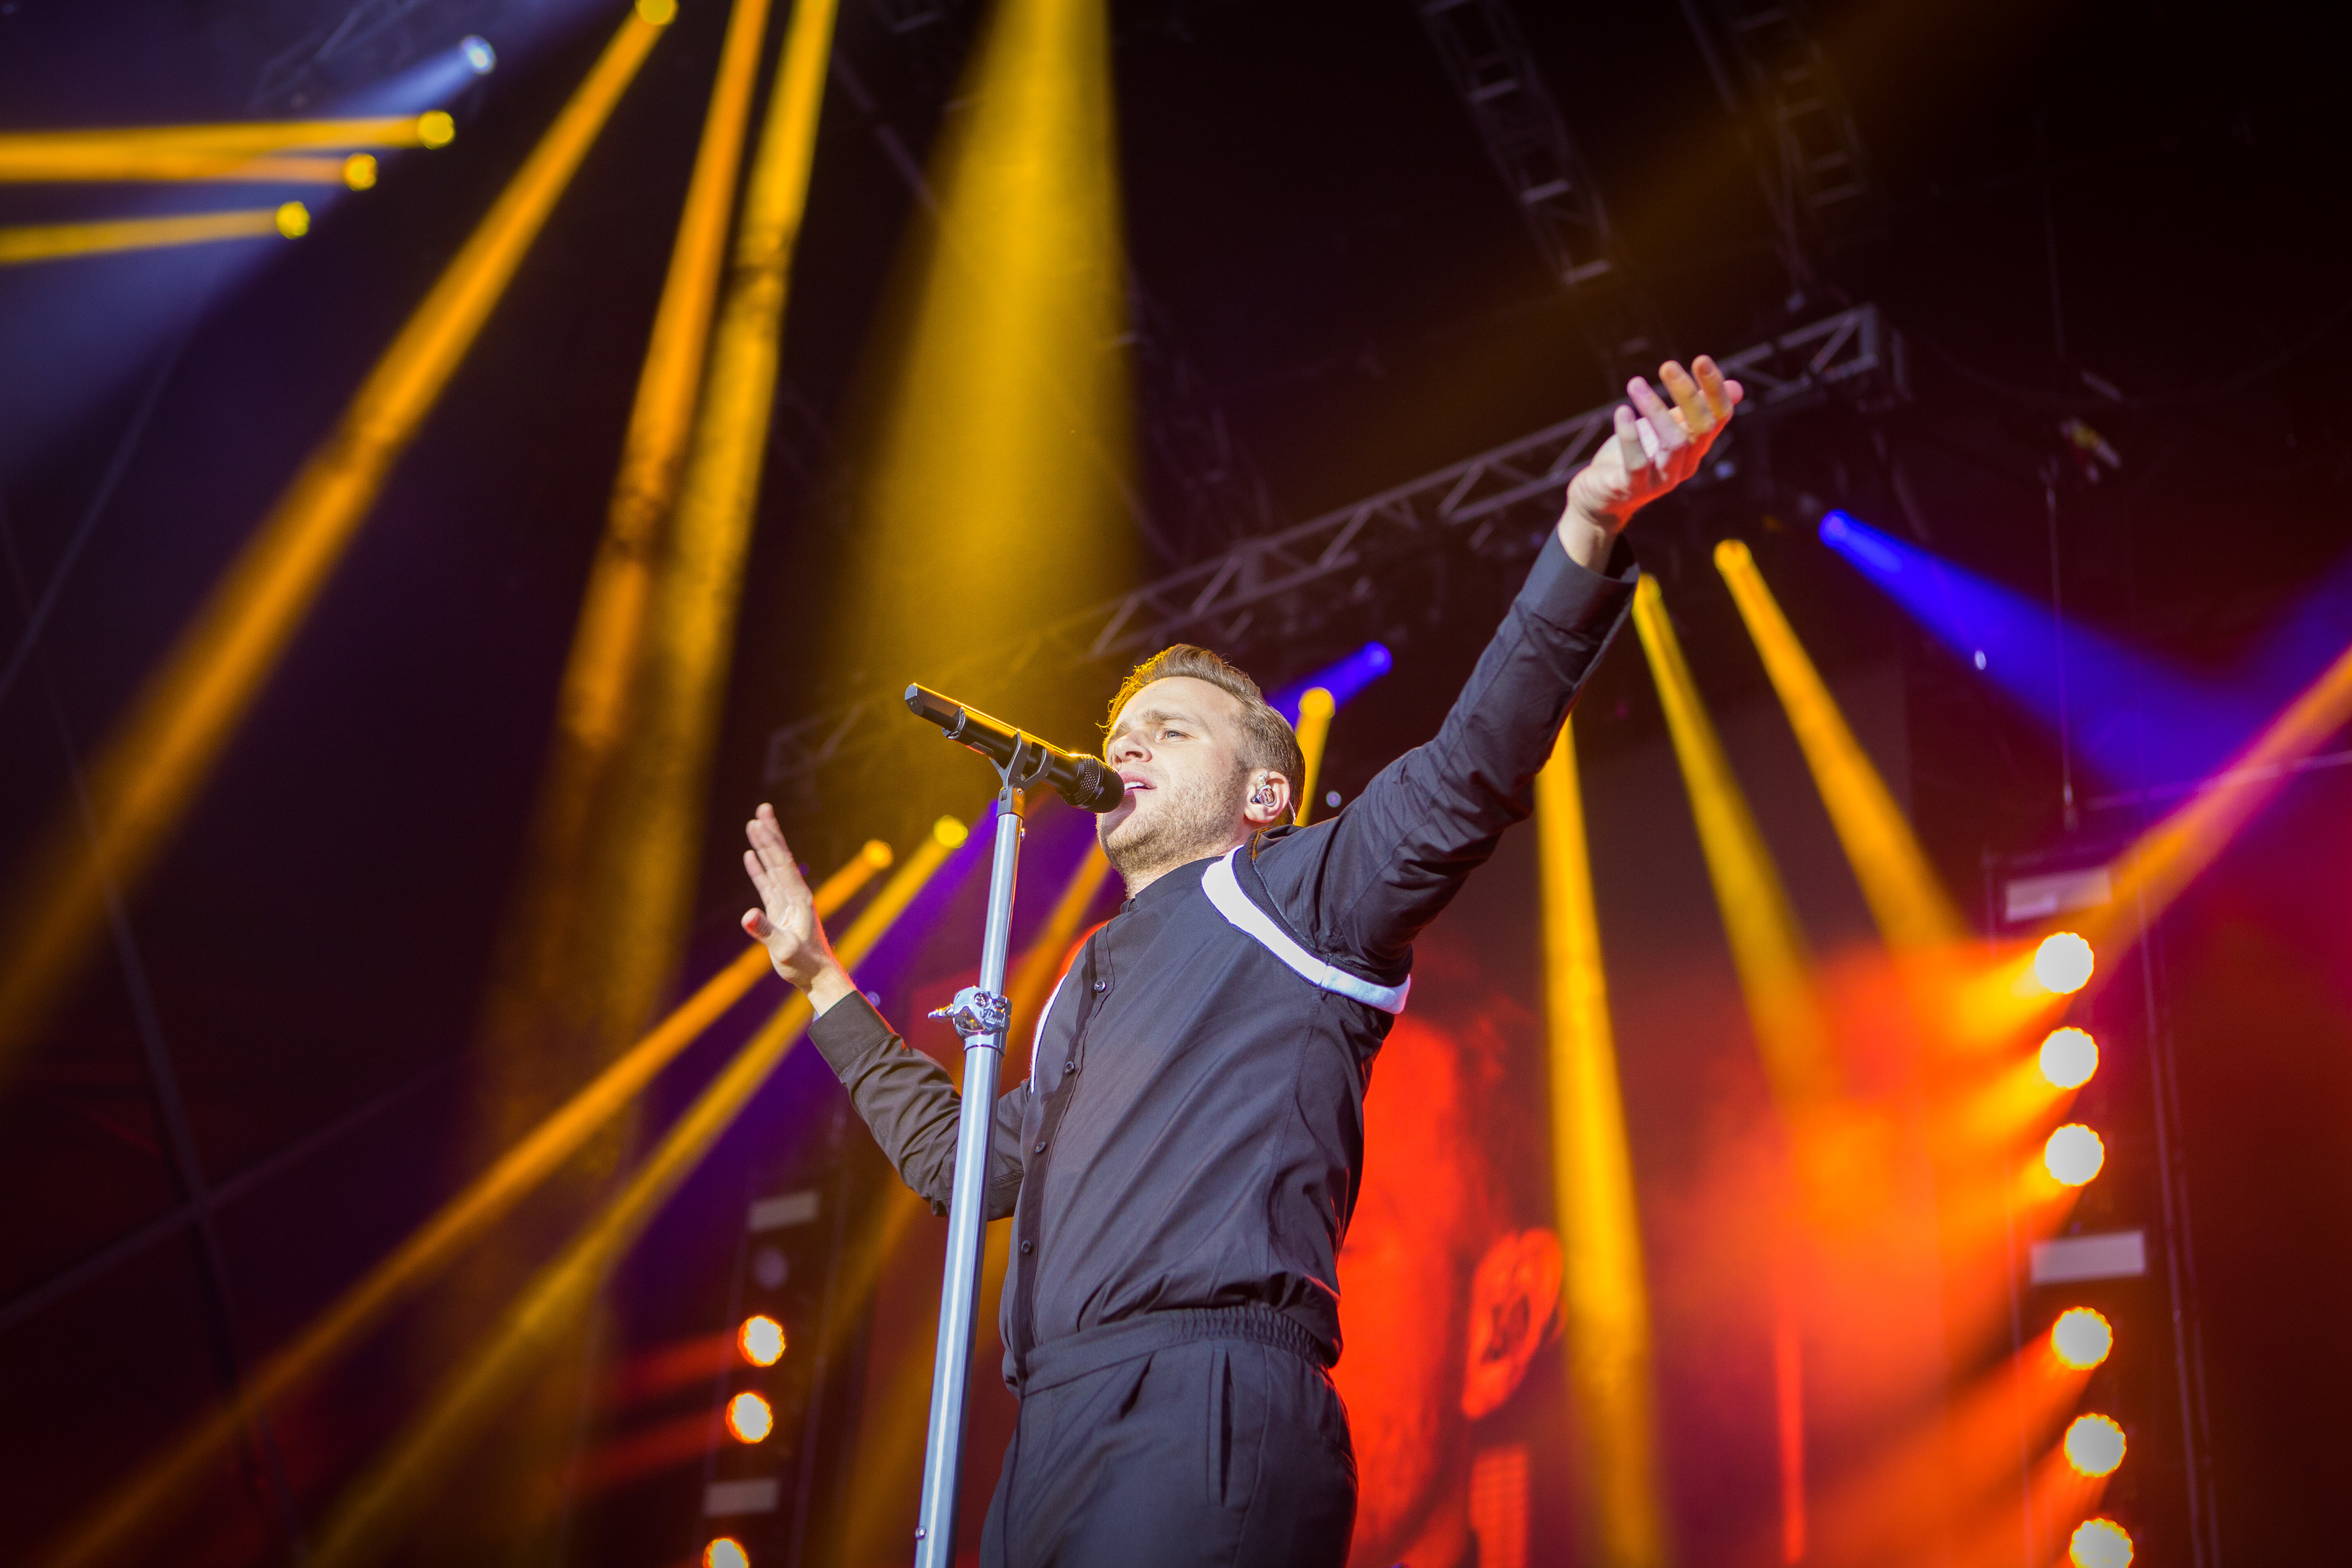 Olly Murs performs in Slessor Gardens